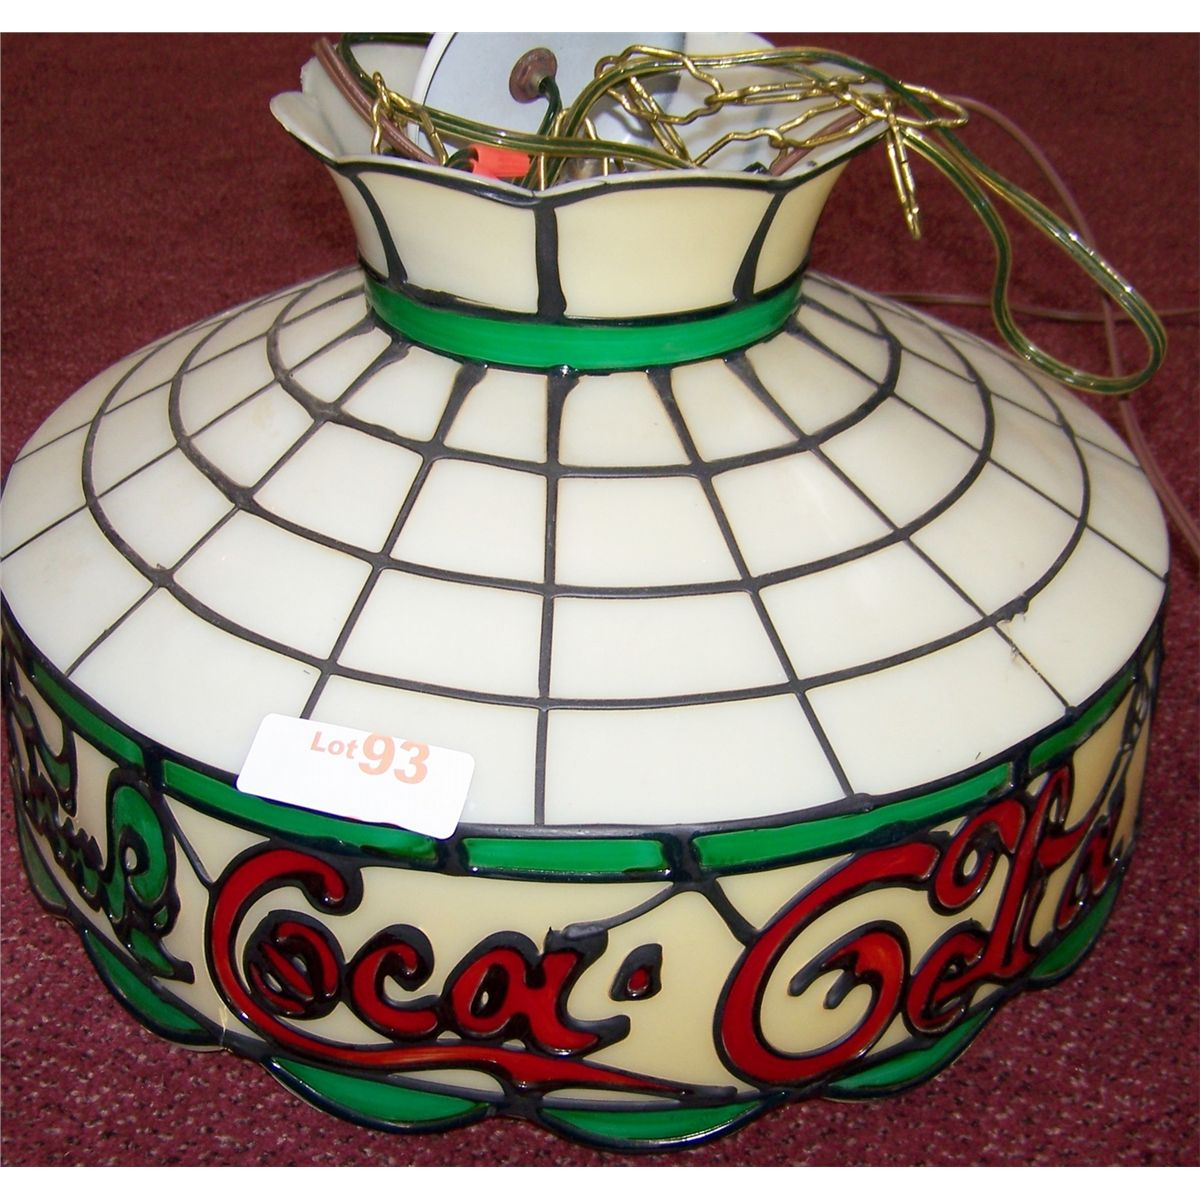 COCA-COLA TIFFANY STYLE PLASTIC LAMP SHADE